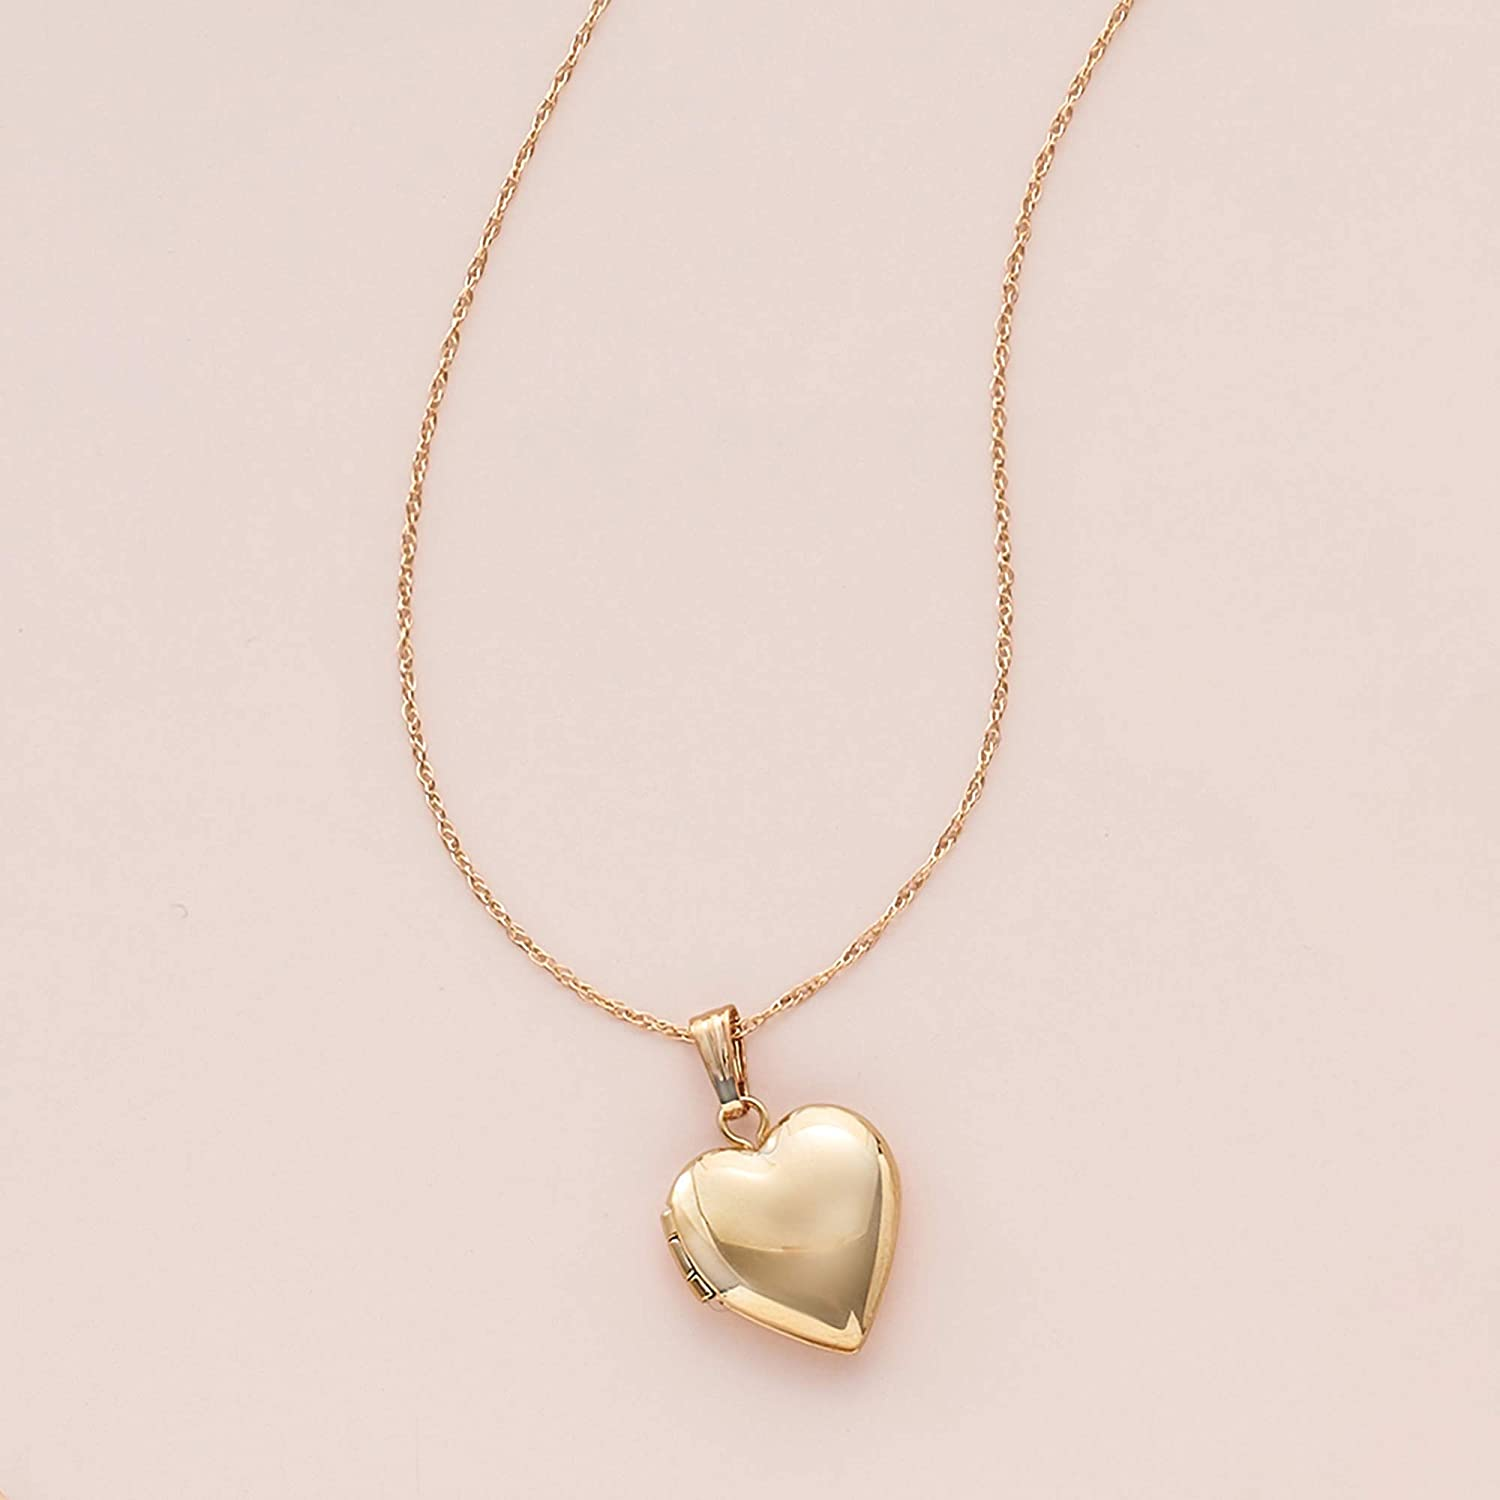 Ross-Simons Babys 14kt Yellow Gold Single Initial Heart Locket Necklace